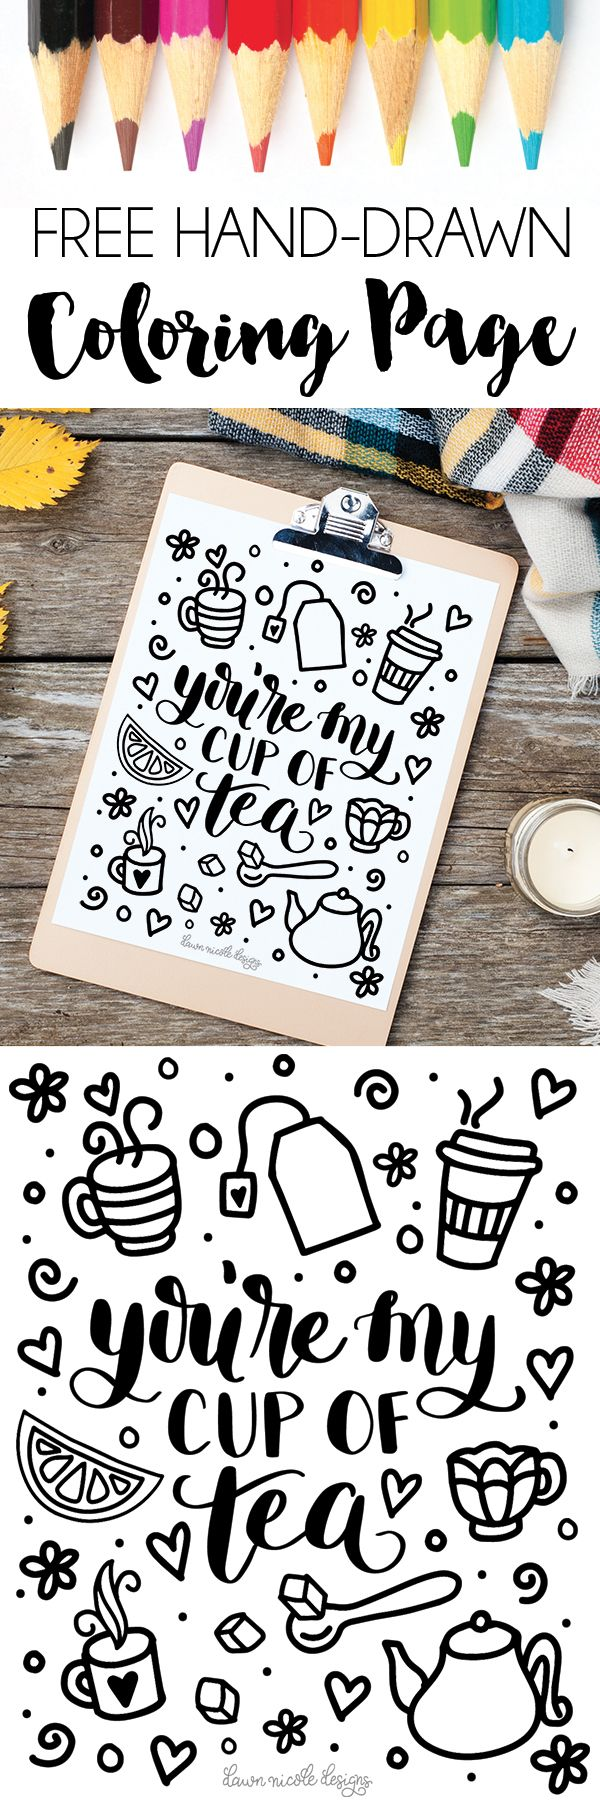 1506 best printables images on pinterest free printables dawn